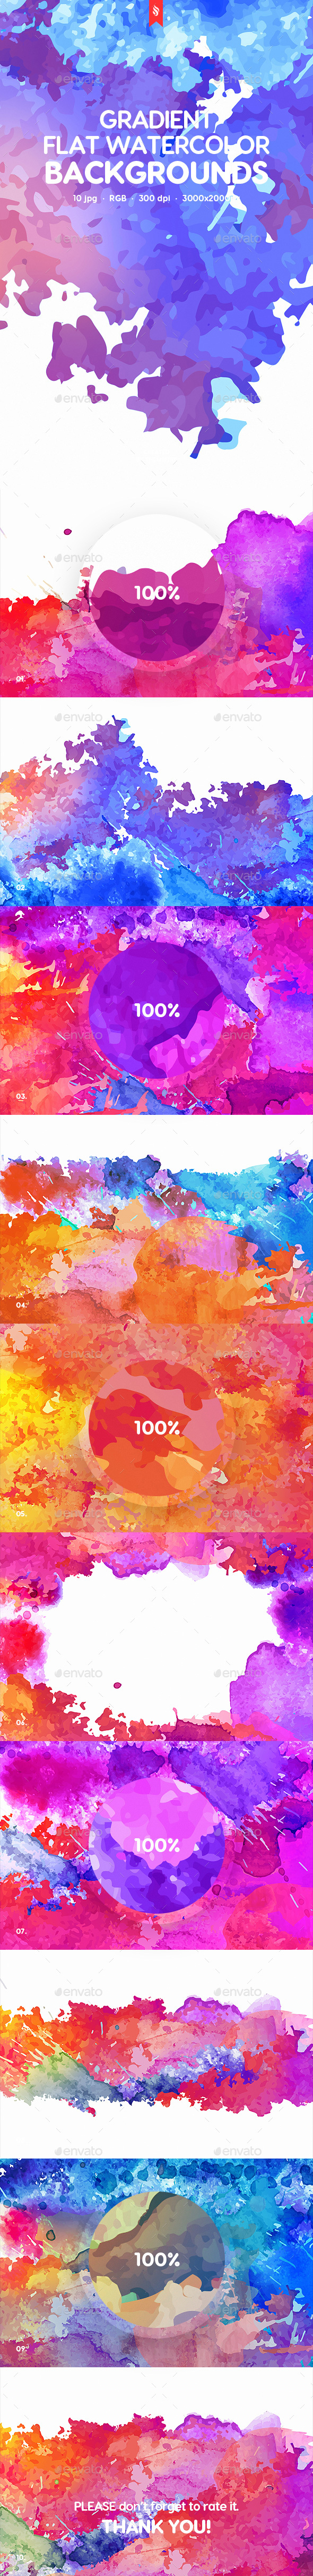 Flat Gradient Watercolor Backgrounds - Abstract Backgrounds